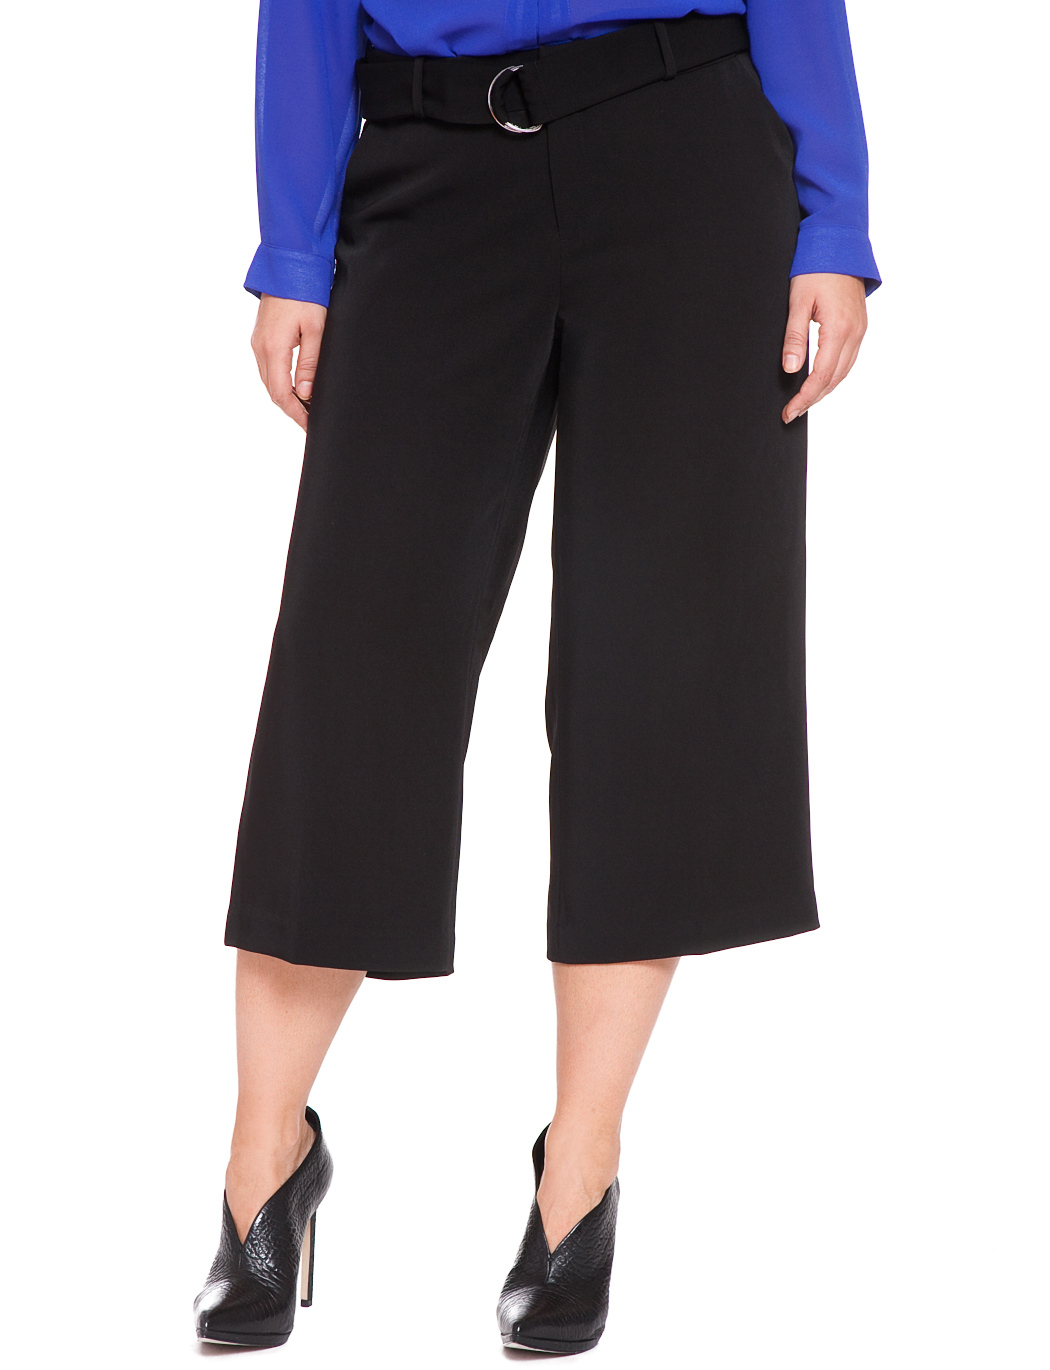 Studio Wideleg Culotte Pant | Women's Plus Size Pants | ELOQUII